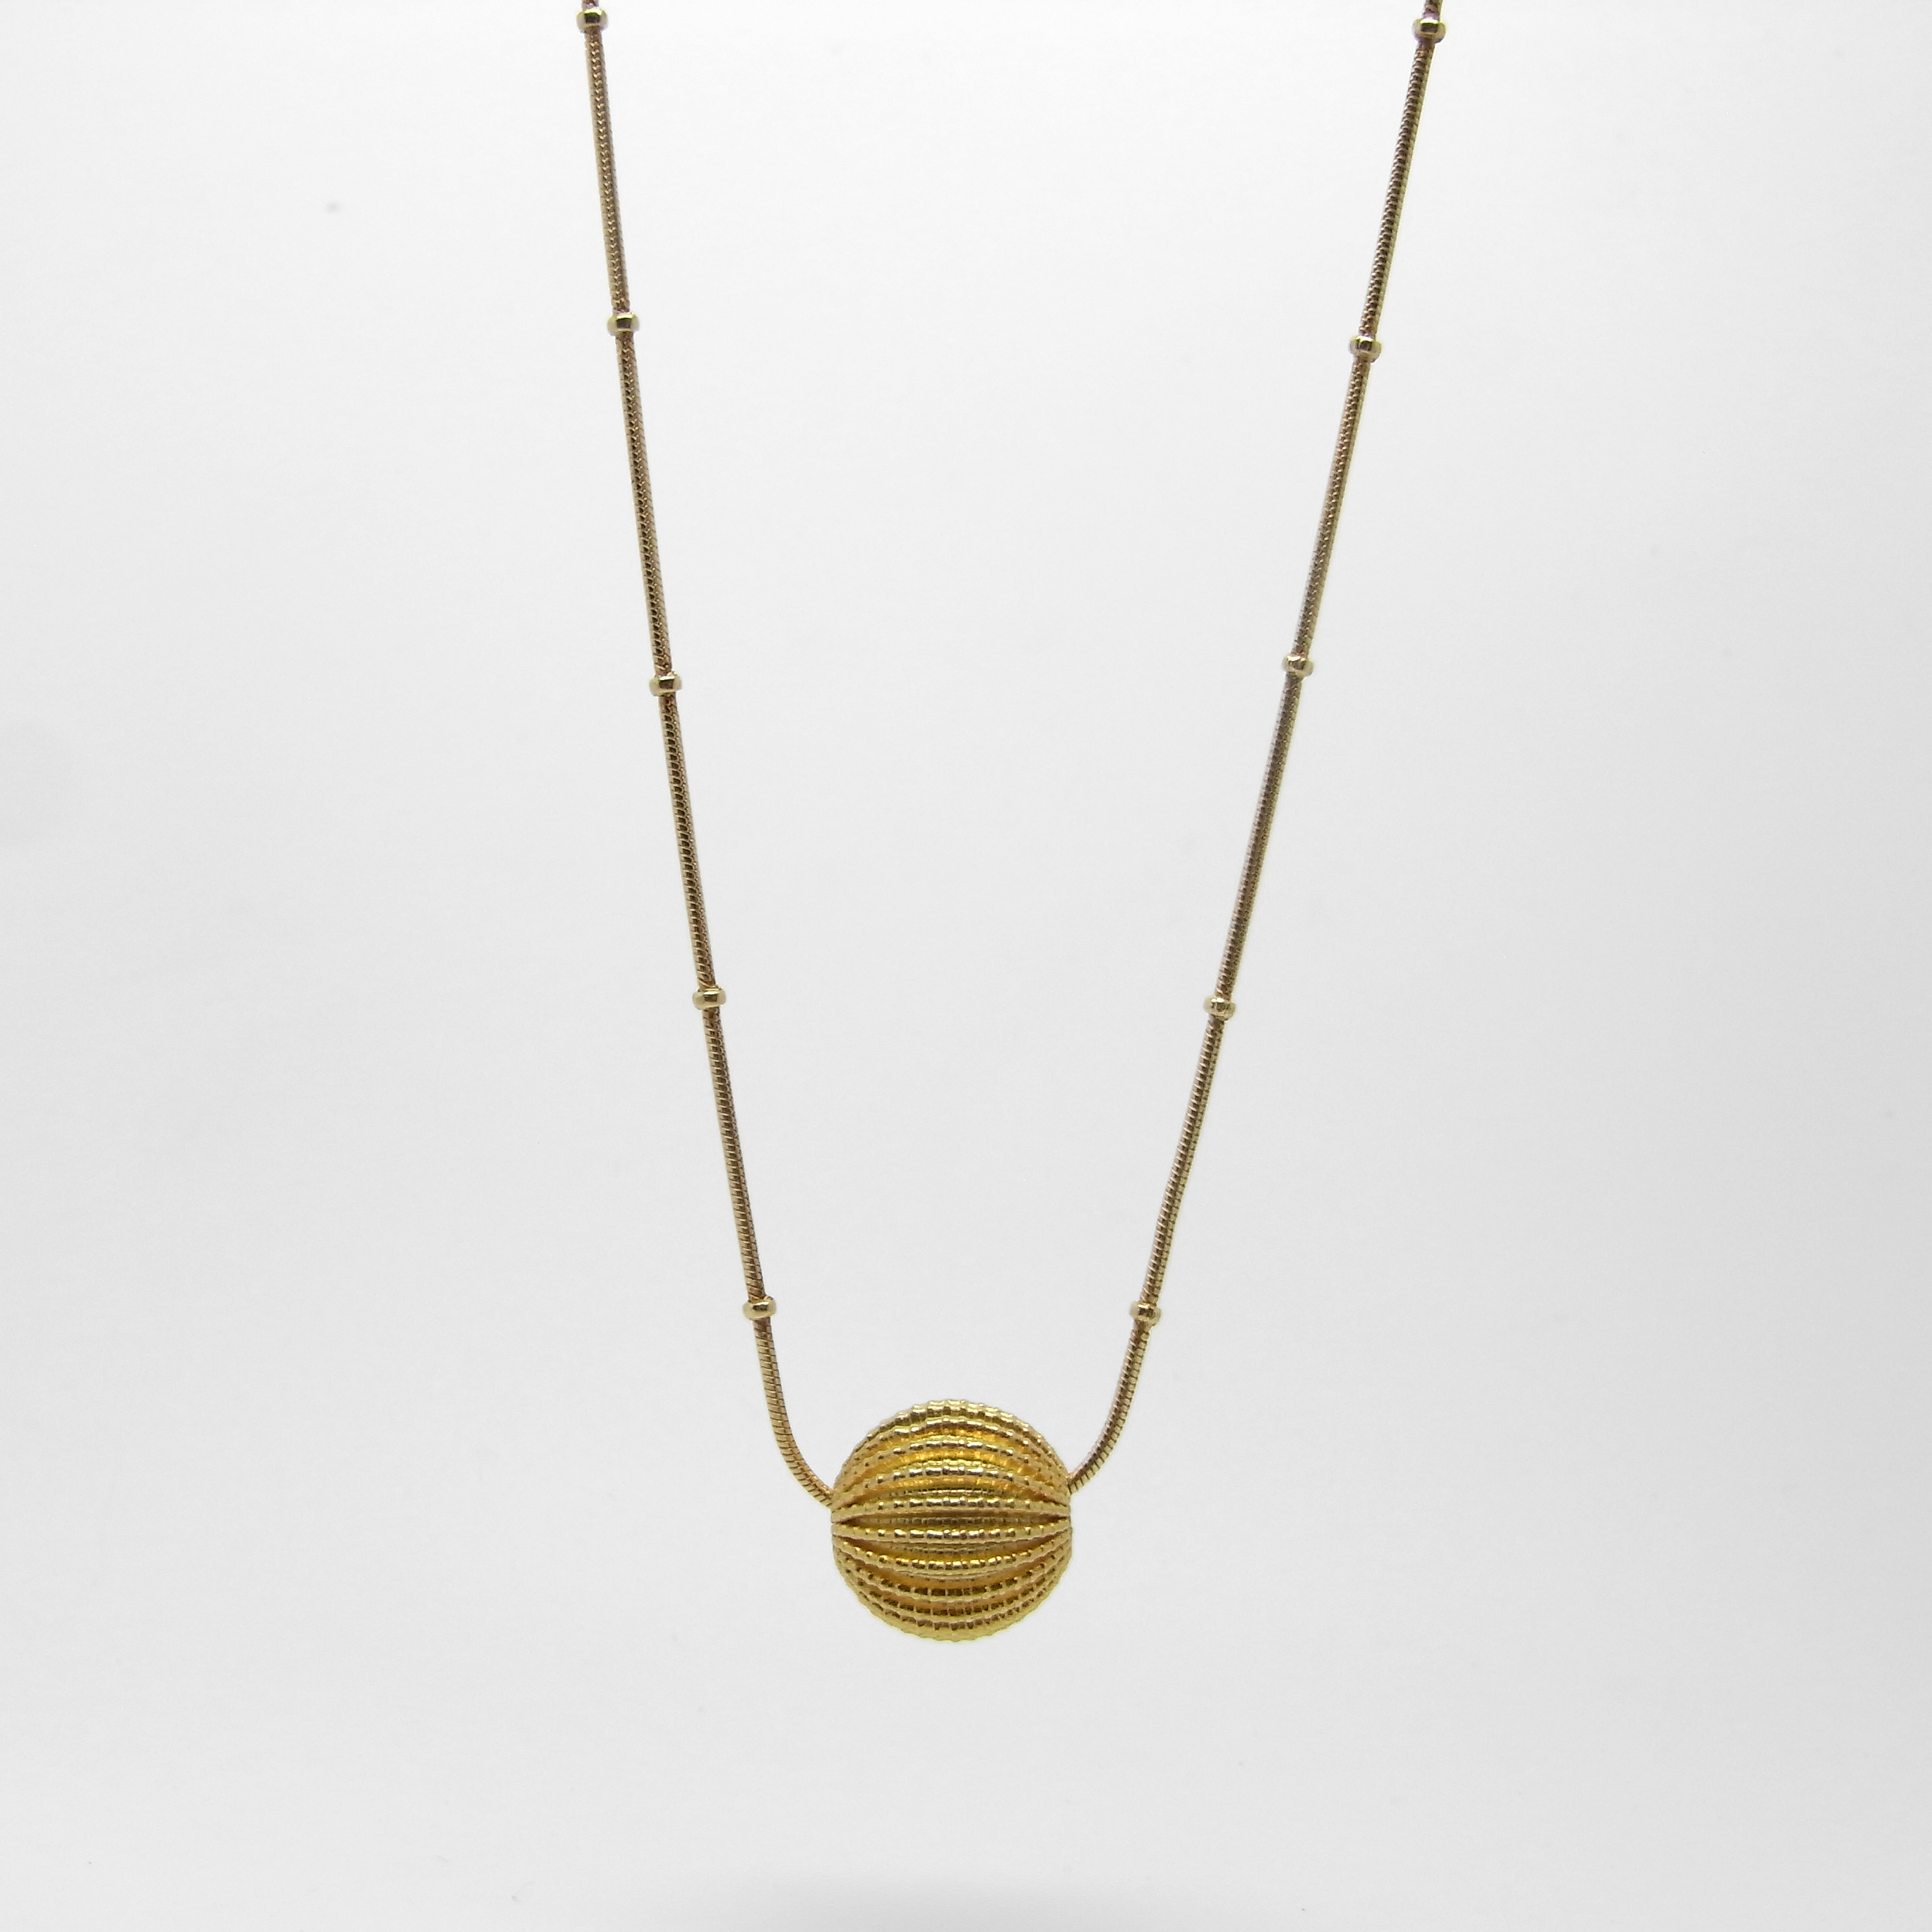 Sea Charm Necklace - Gold Plate